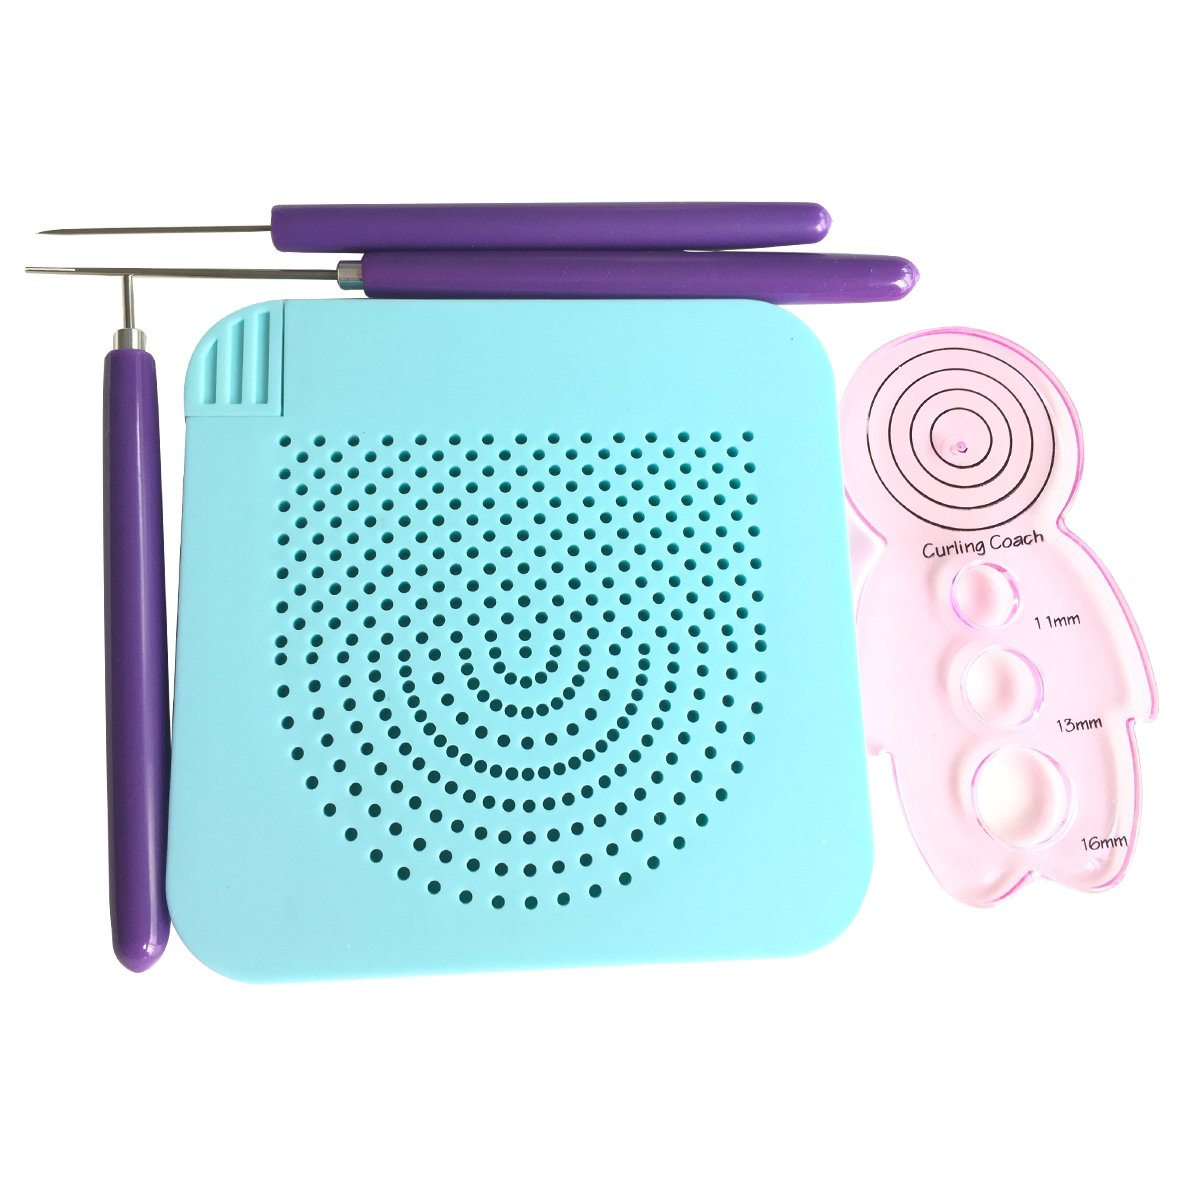 Lantee 5 Sets of Paper Quilling Tools Include 2 Sets of Quilling Slotted Tools 1 Quilling Awl 1 Quilling Curling Coach and 1 Quilling Board with Pins Storage